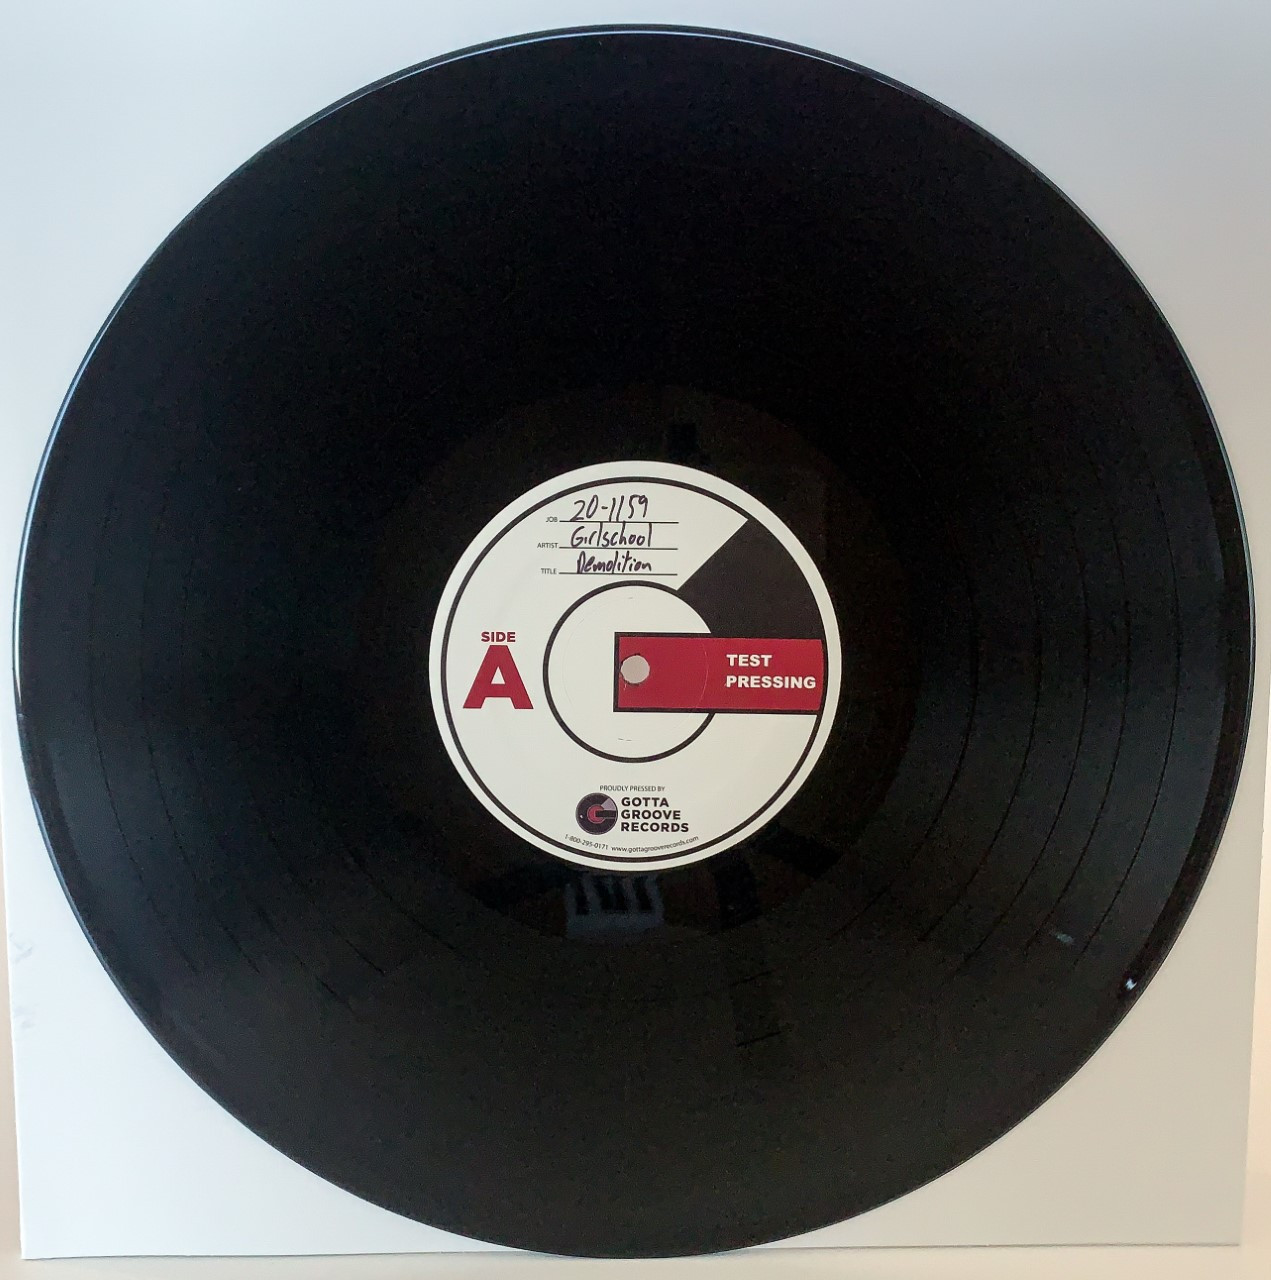 Demolition by Girlschool LP Test Pressing available now.